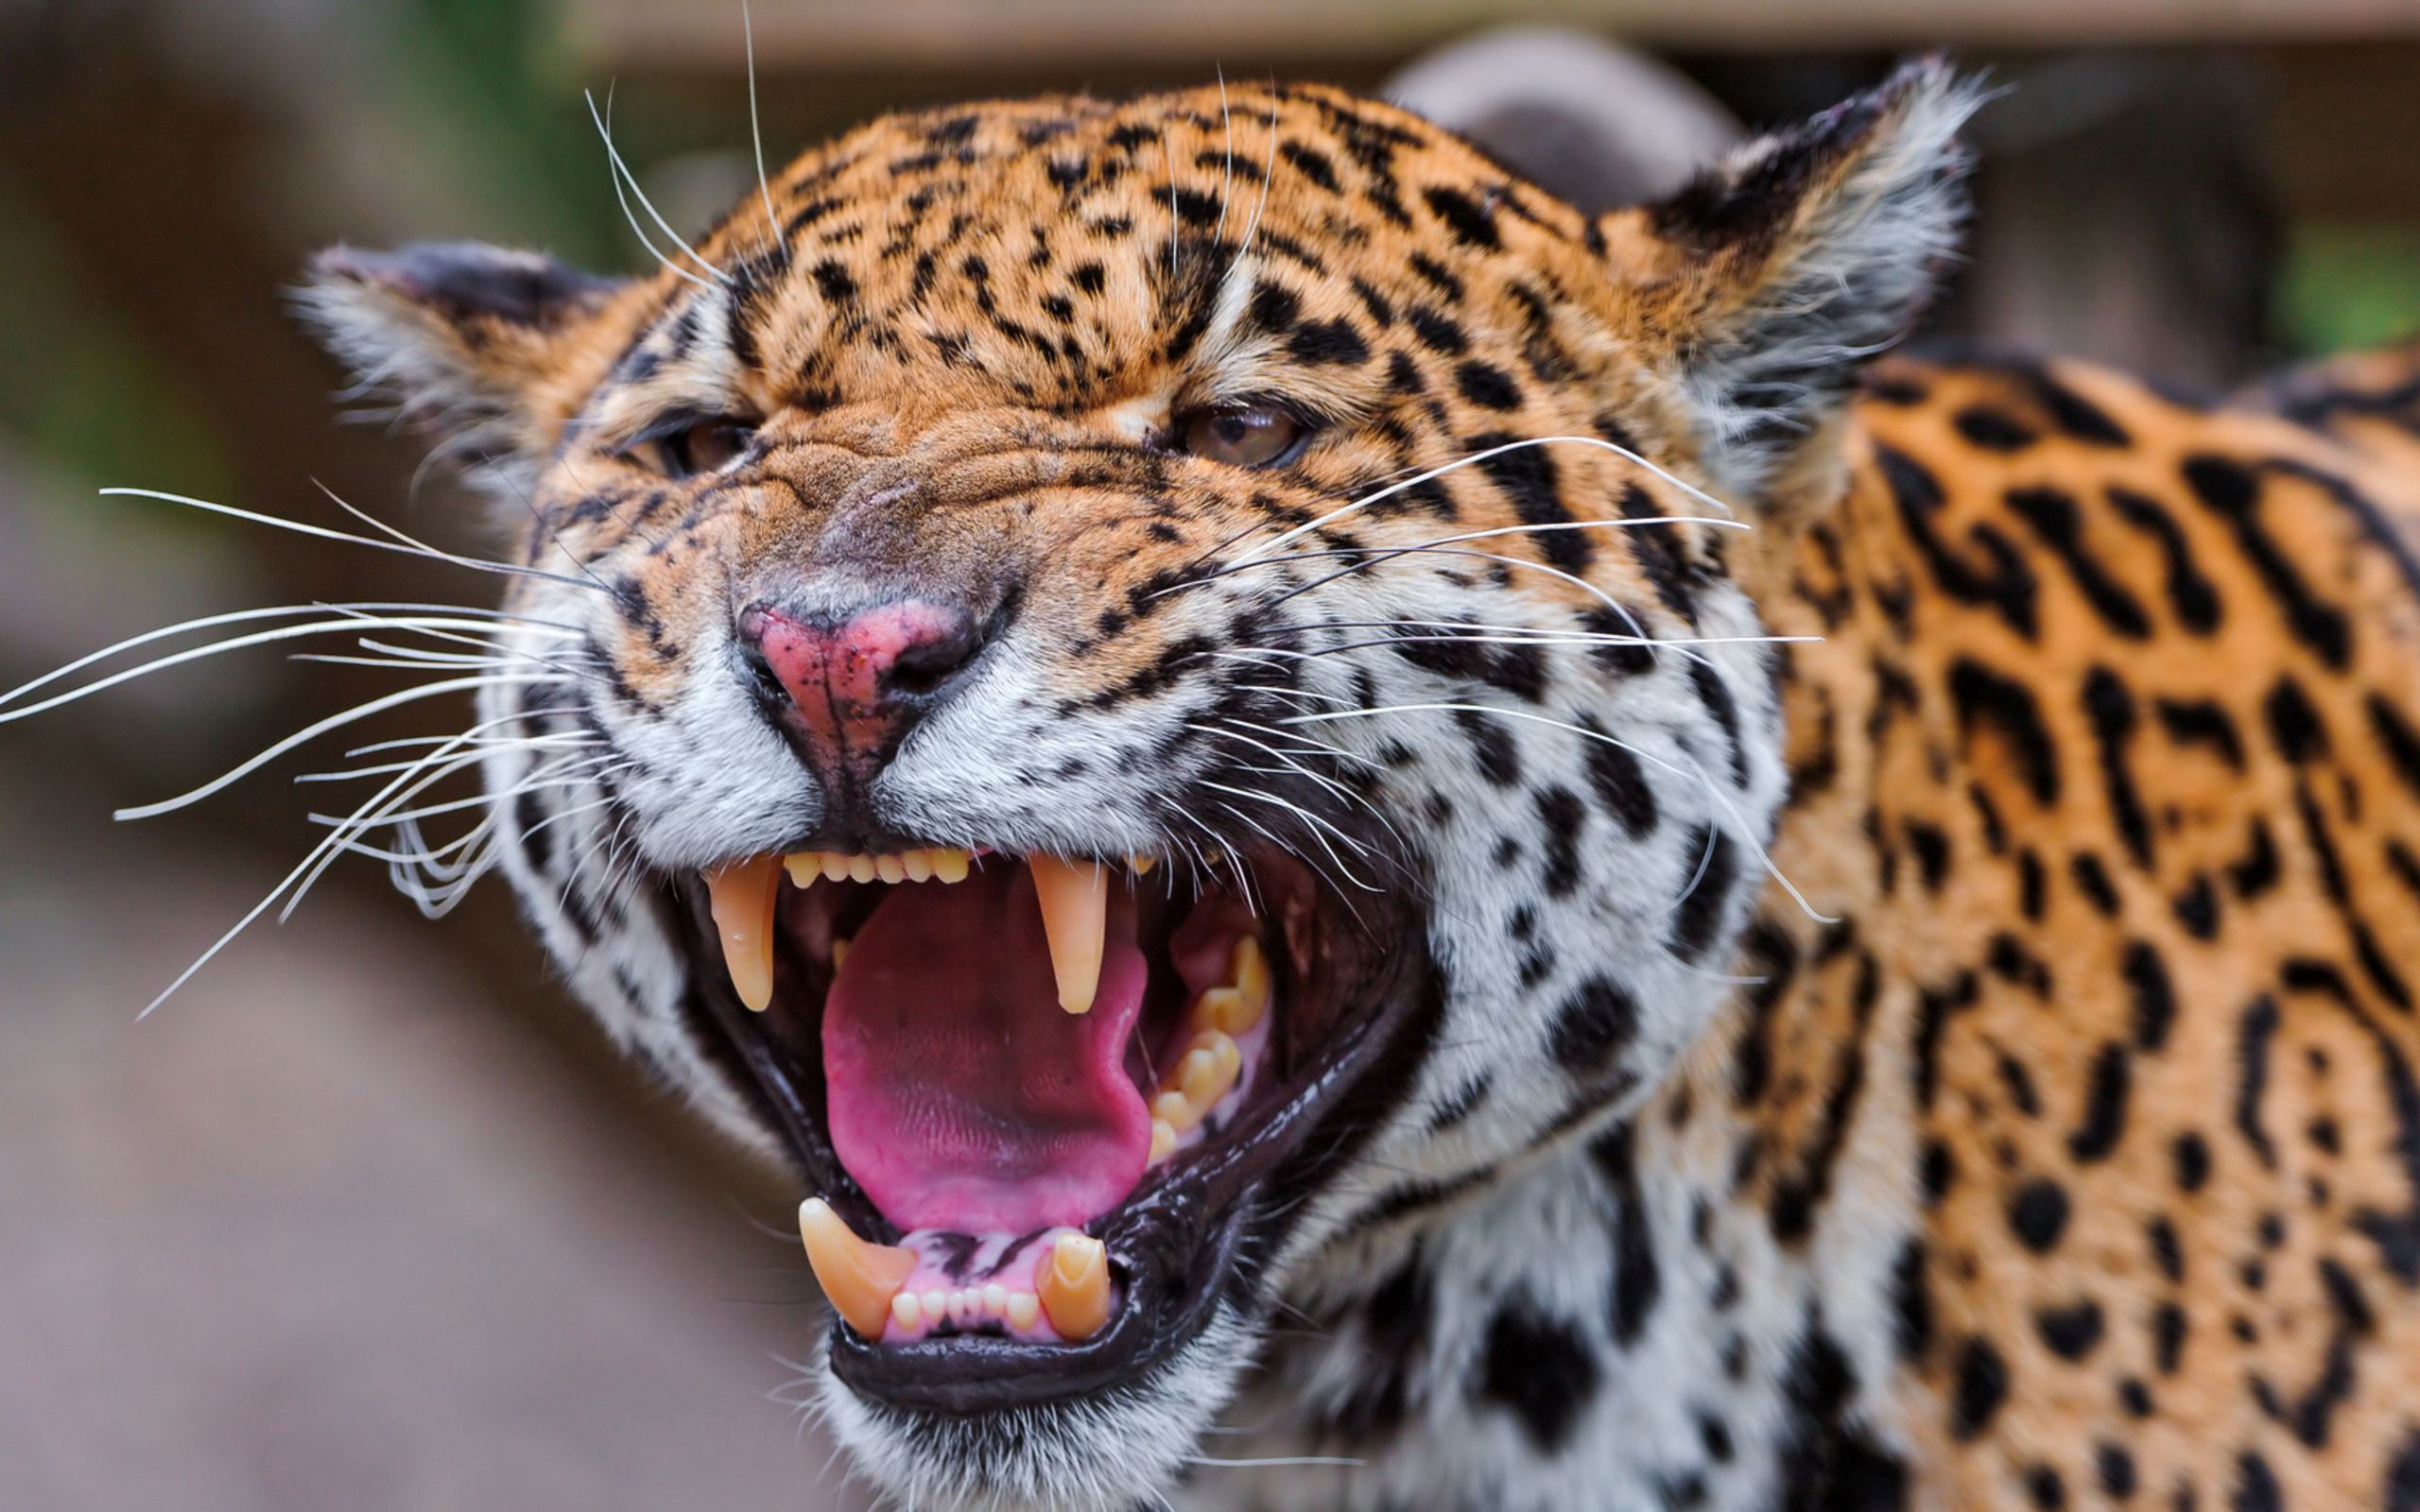 154100 download wallpaper Animals, Jaguar, Spotted, Spotty, Muzzle, Predator, Big Cat screensavers and pictures for free